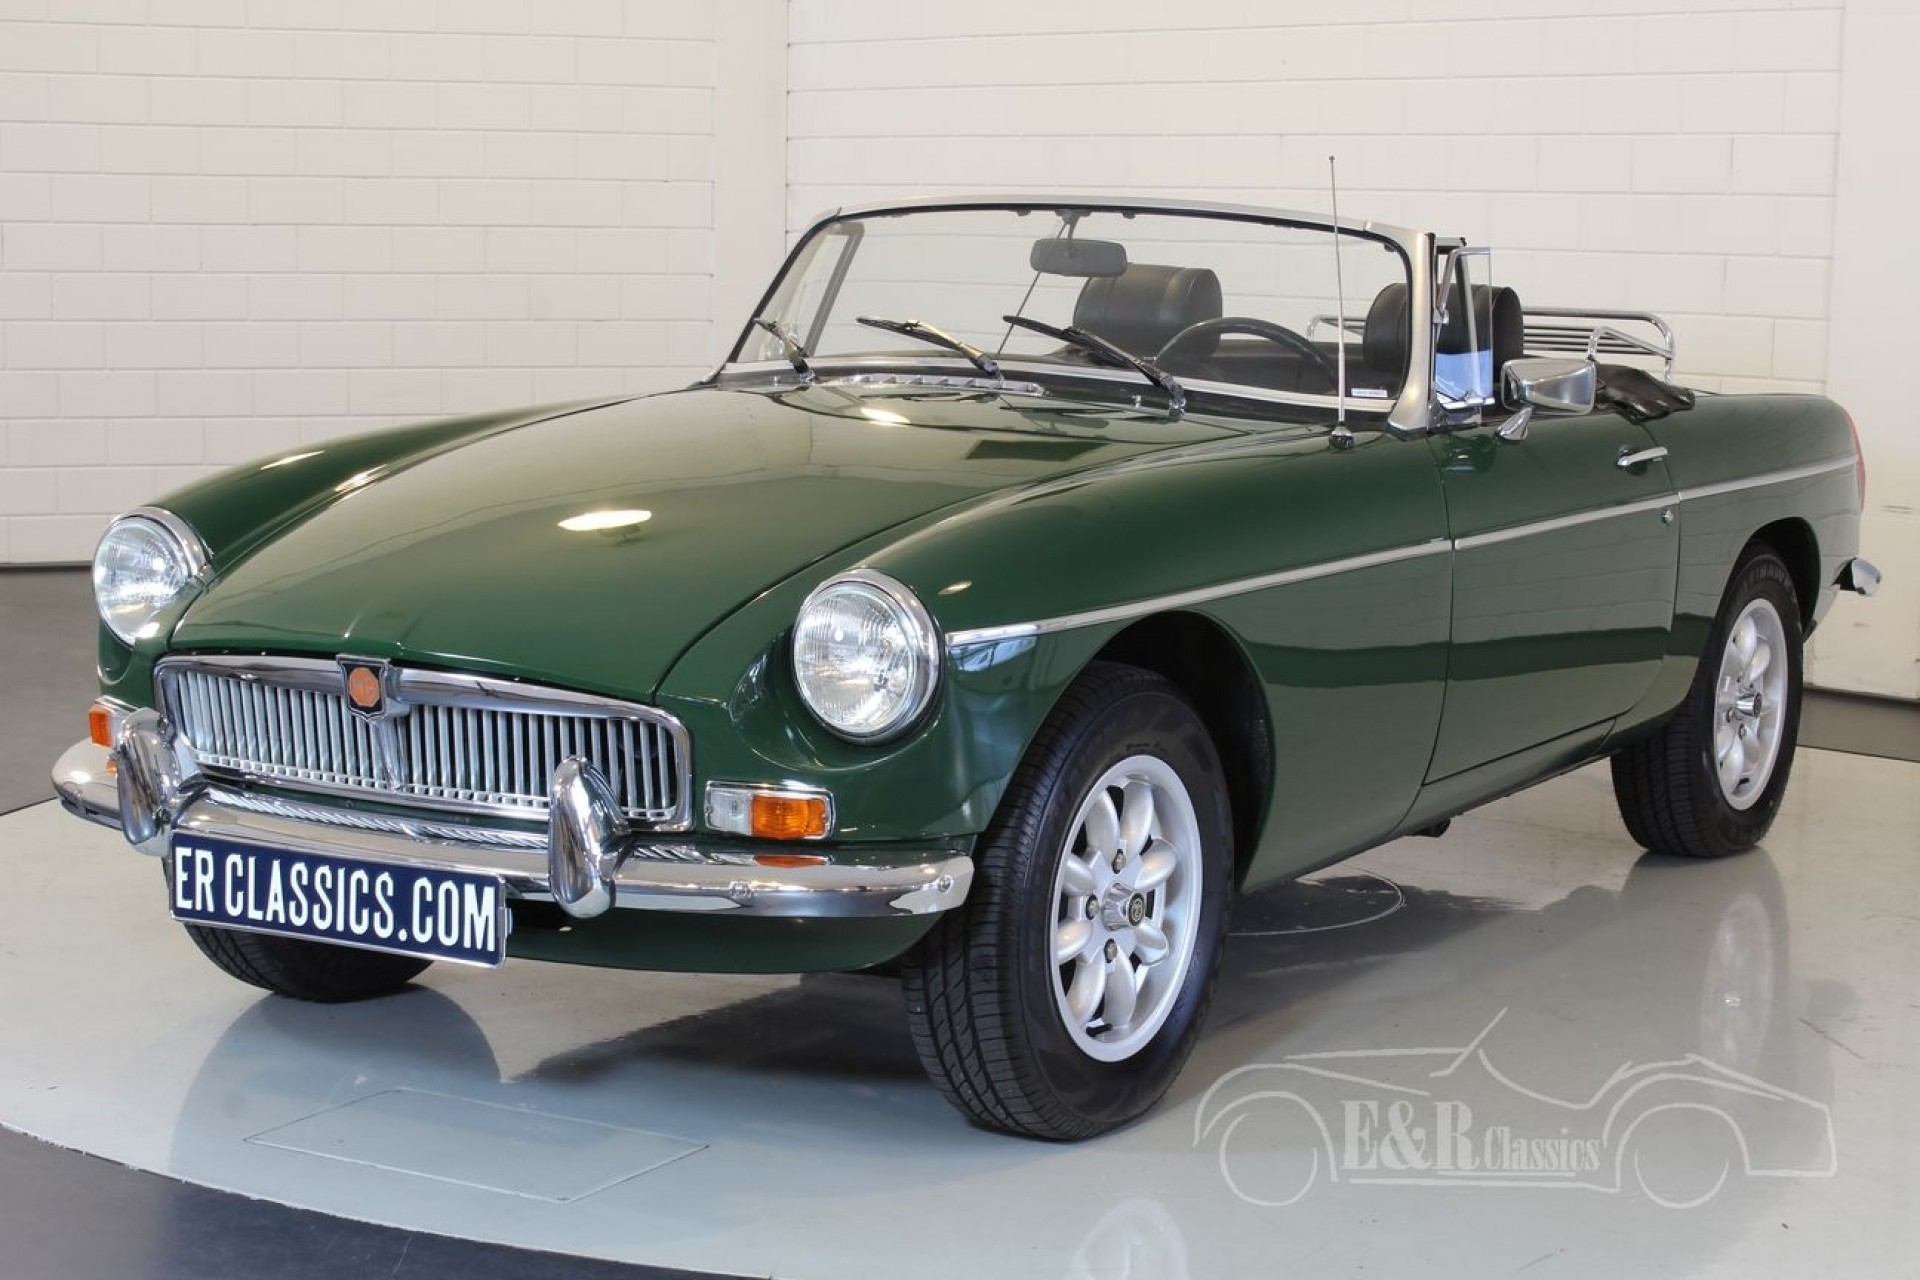 mgb cabrio british racing green 1976 vendre erclassics. Black Bedroom Furniture Sets. Home Design Ideas